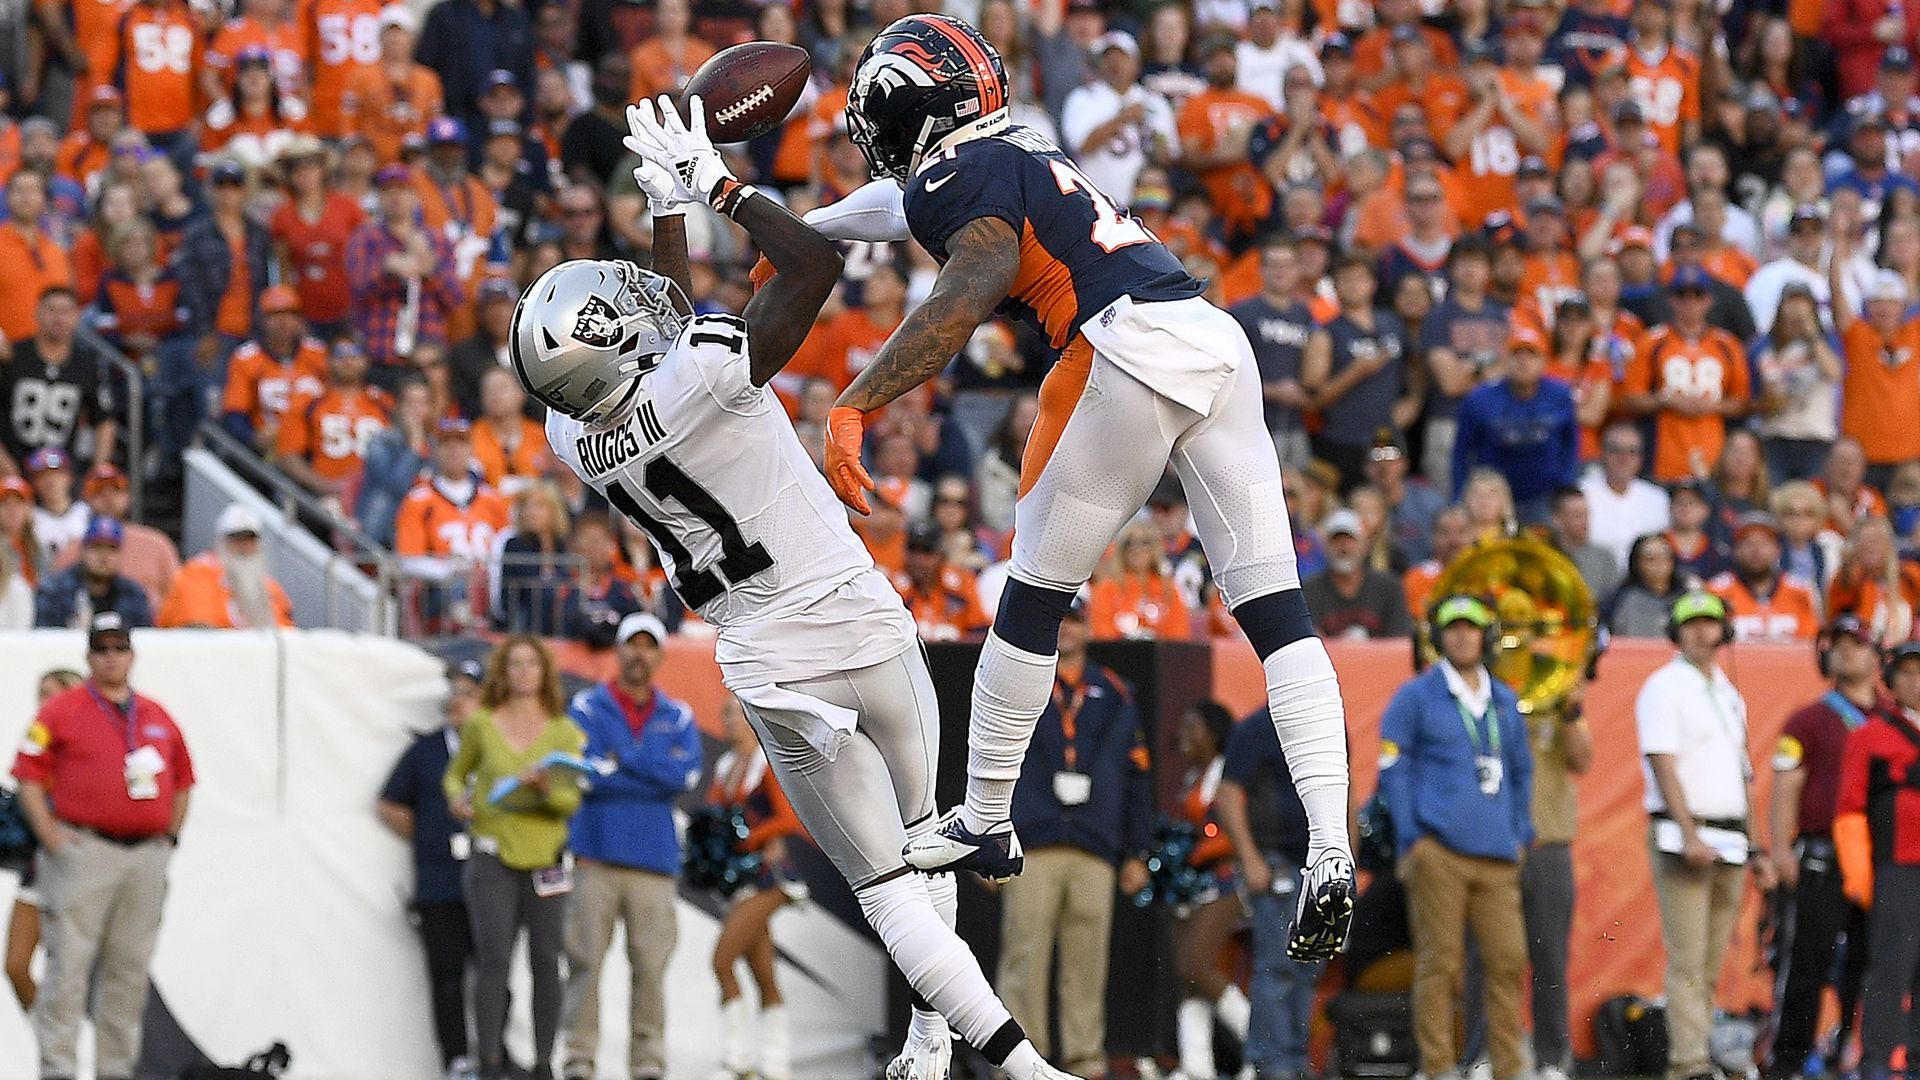 Henry Ruggs III #11 of the Las Vegas Raiders completes a catch against Ronald Darby #21 of the Denver Broncos during the third quarter at Empower Field At Mile High on Oct. 17.